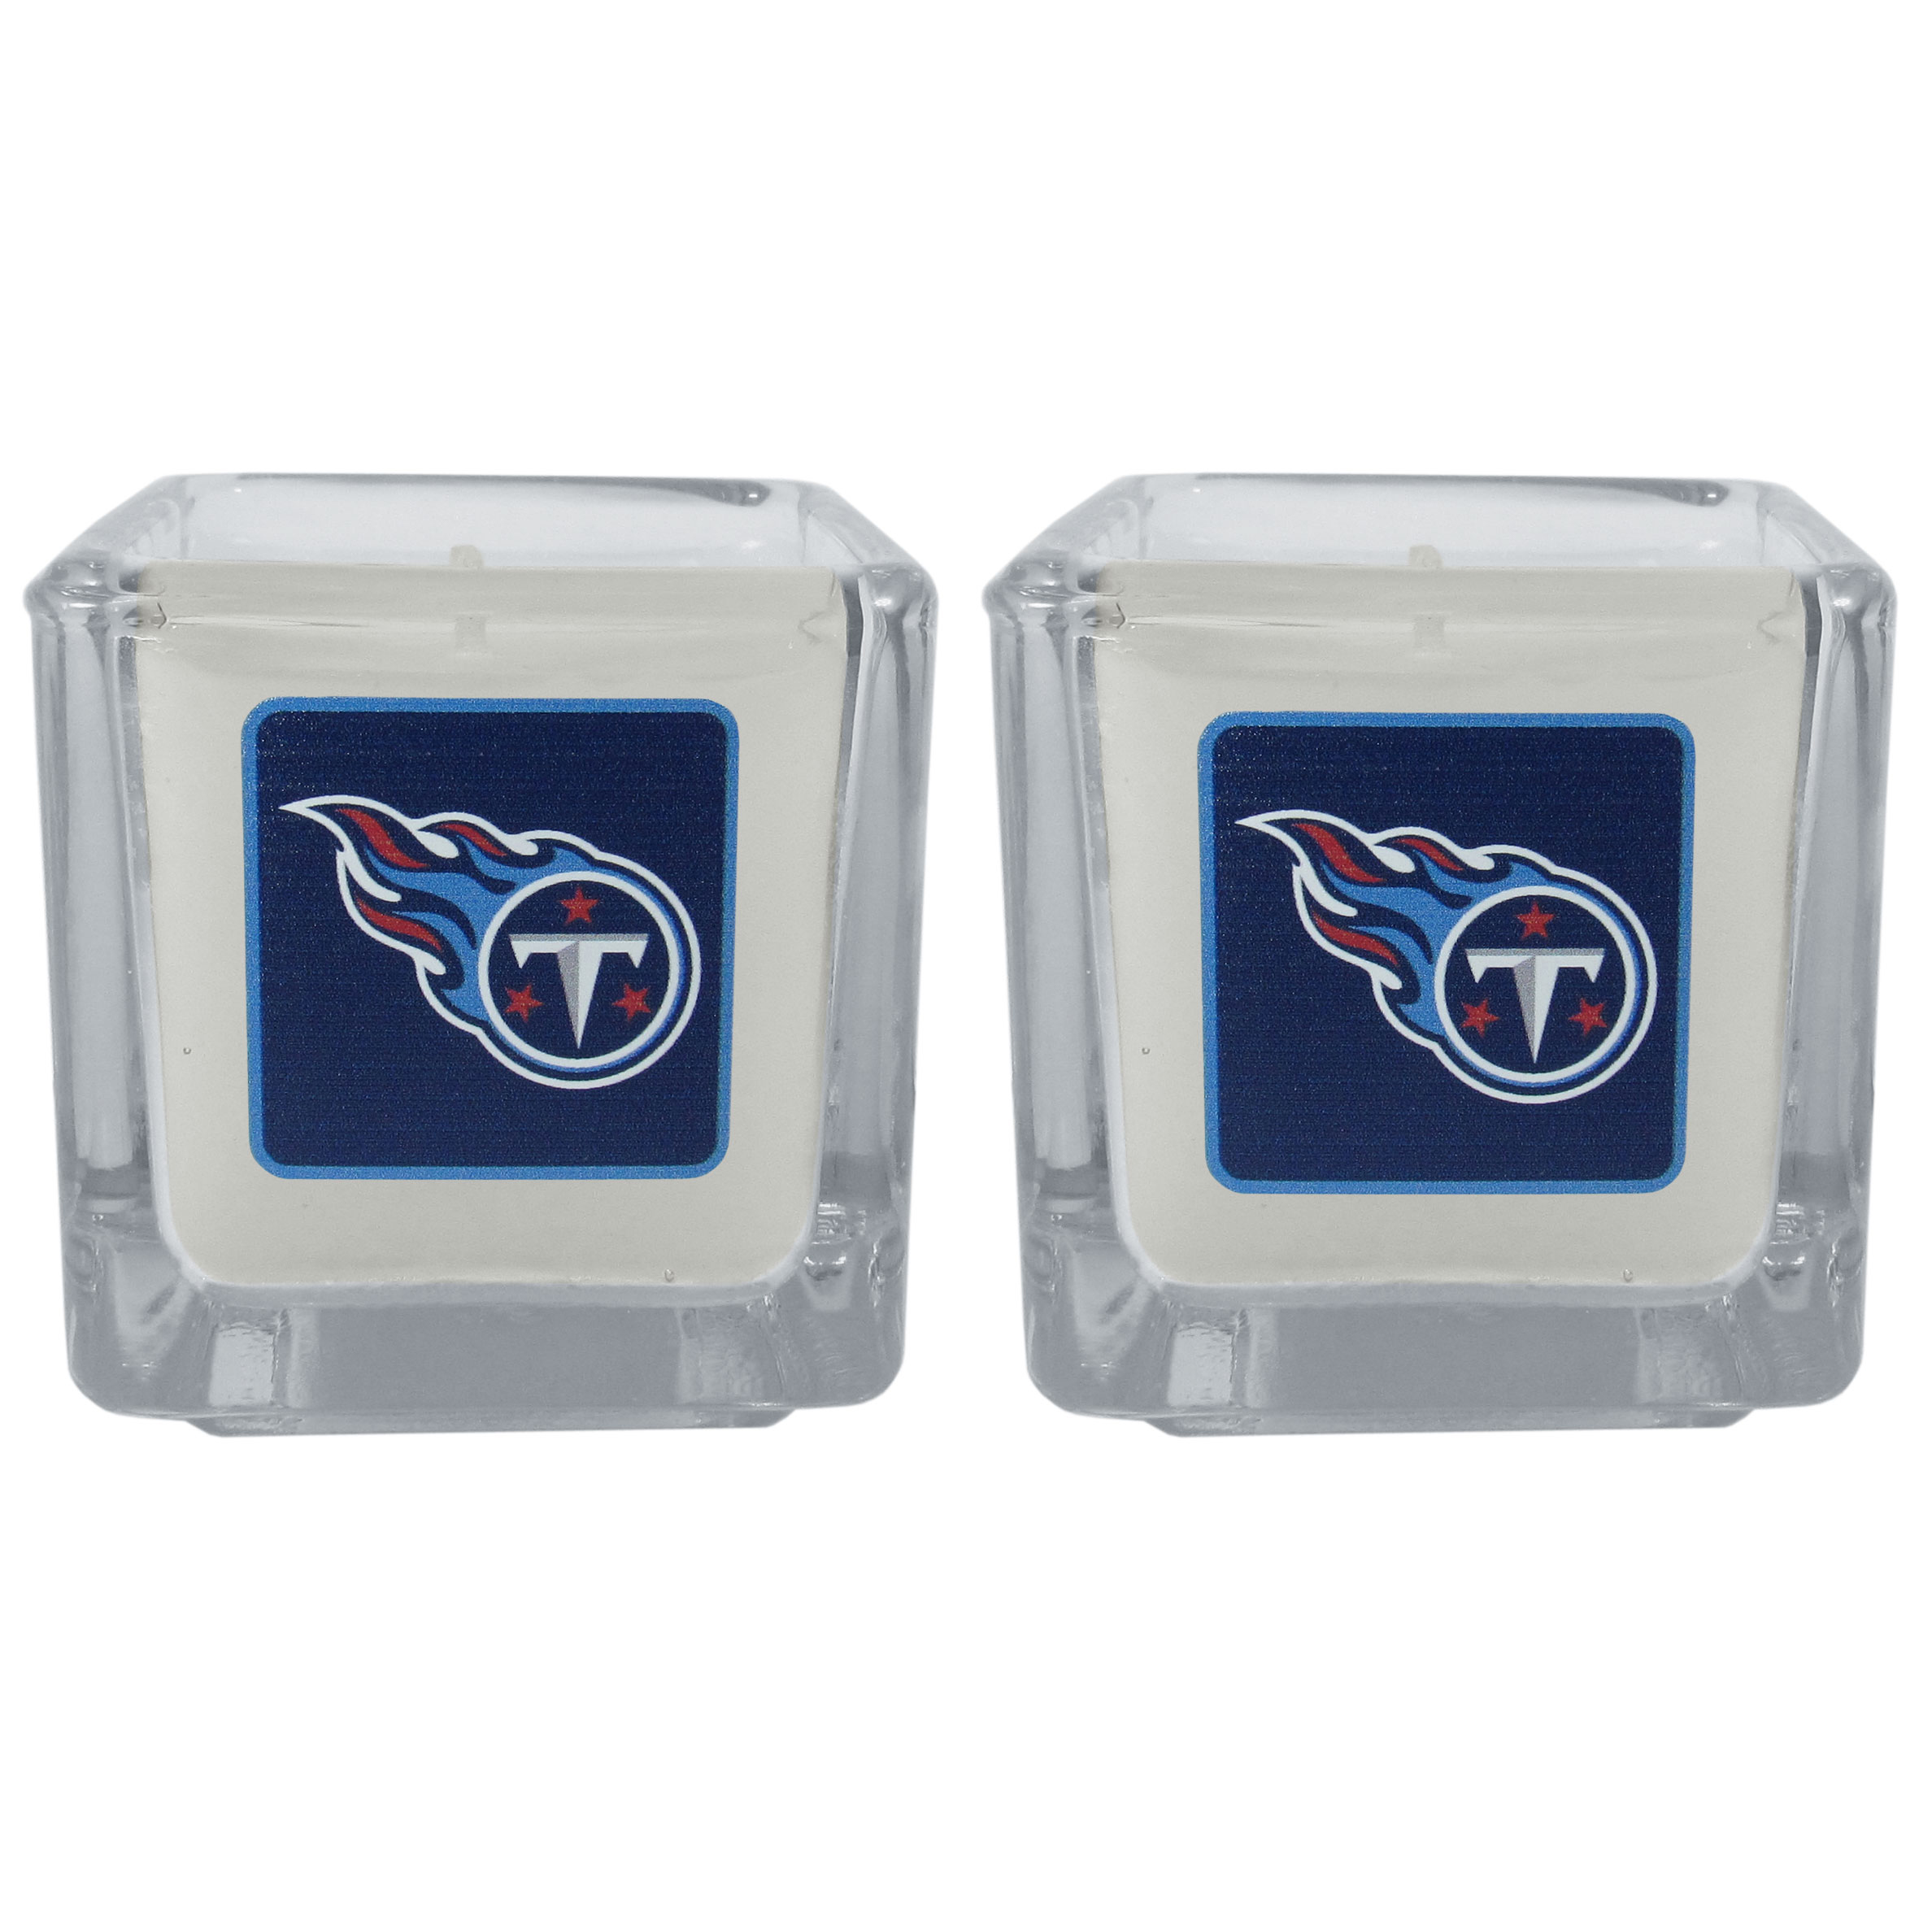 Tennessee Titans Graphics Candle Set - Our candle set features 2 lightly vanilla scented candles with the Tennessee Titans logo expertly printed on front. The candles are 2 inches tall in the votive style.